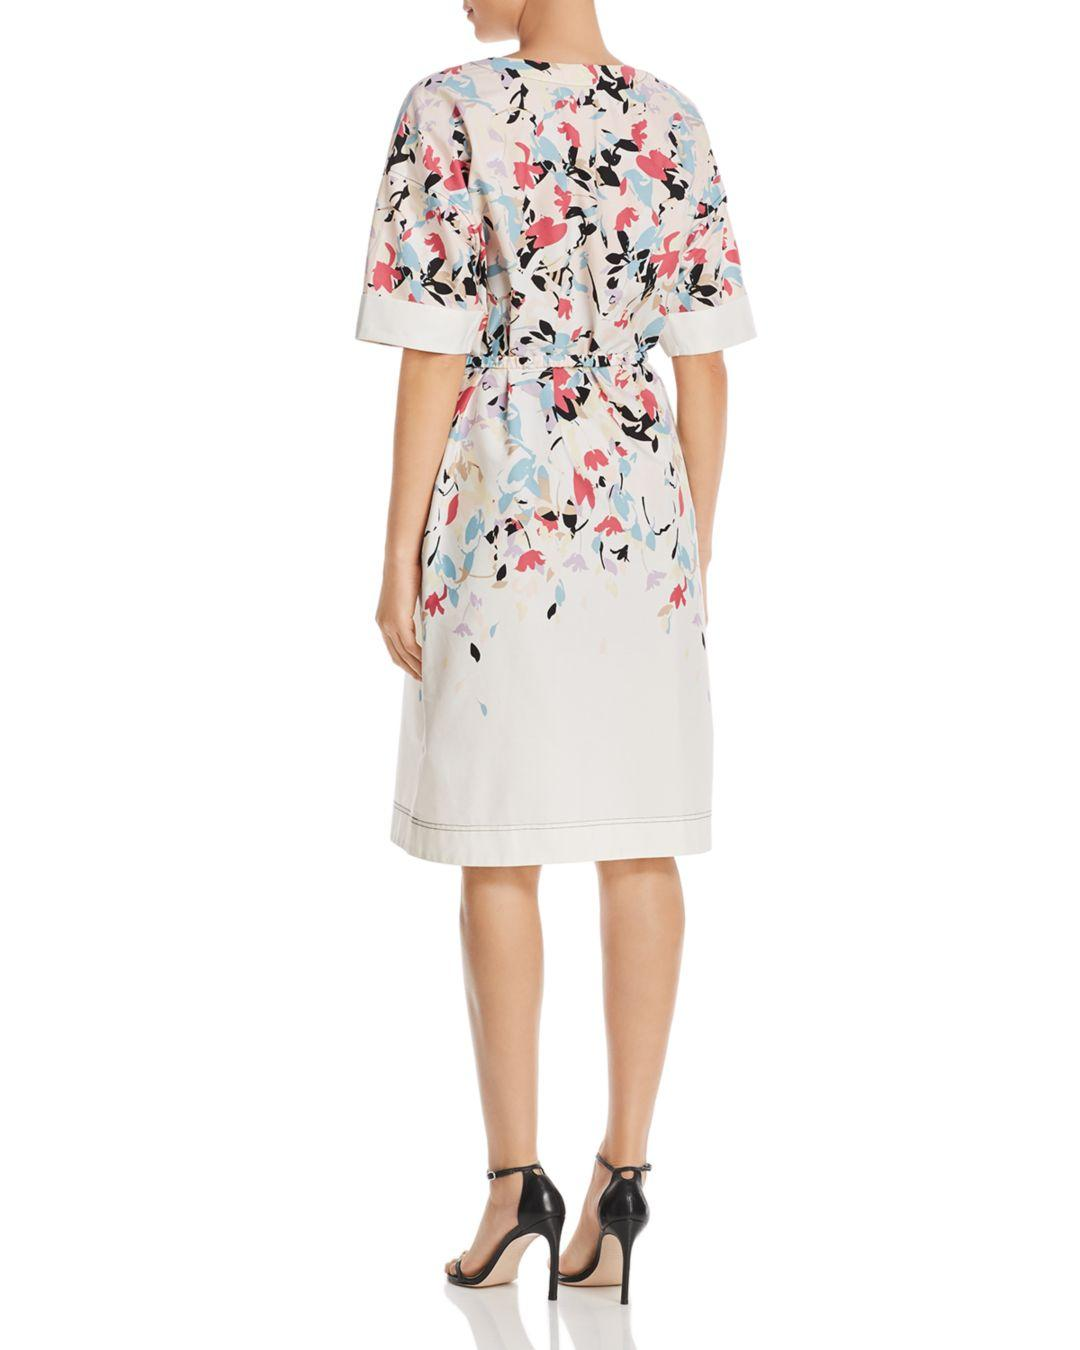 81c7258a440 Lyst - DKNY Donna Karan New York Belted Floral-printed Button-front Dress  in White